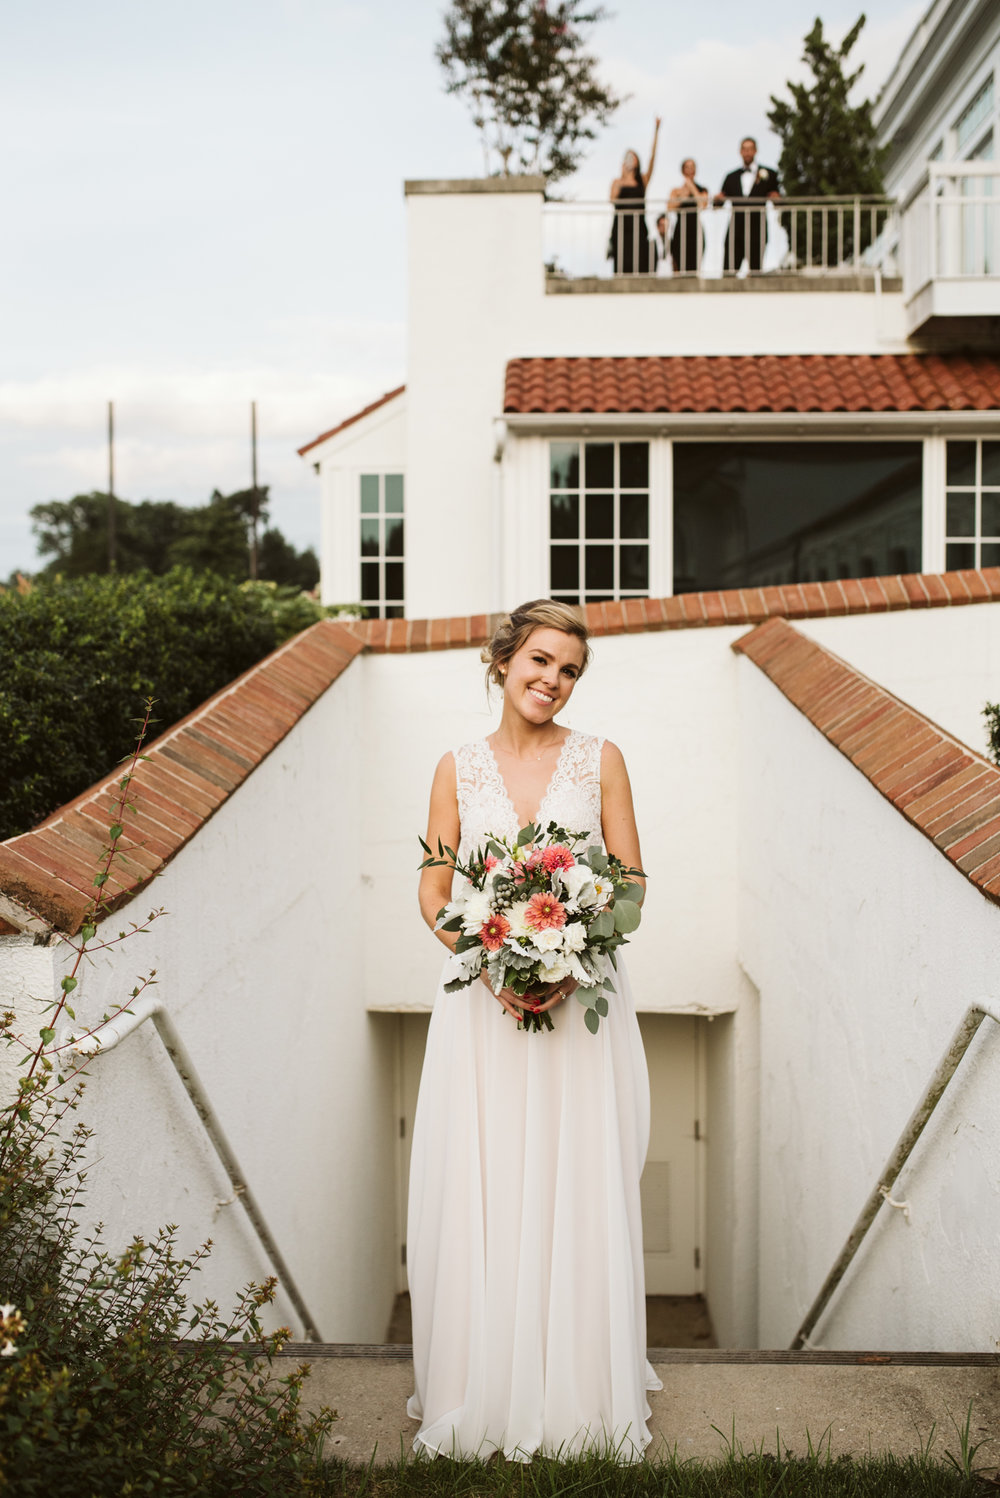 bride looking sweet and beautiful in cool architectural structure with brick and stucco